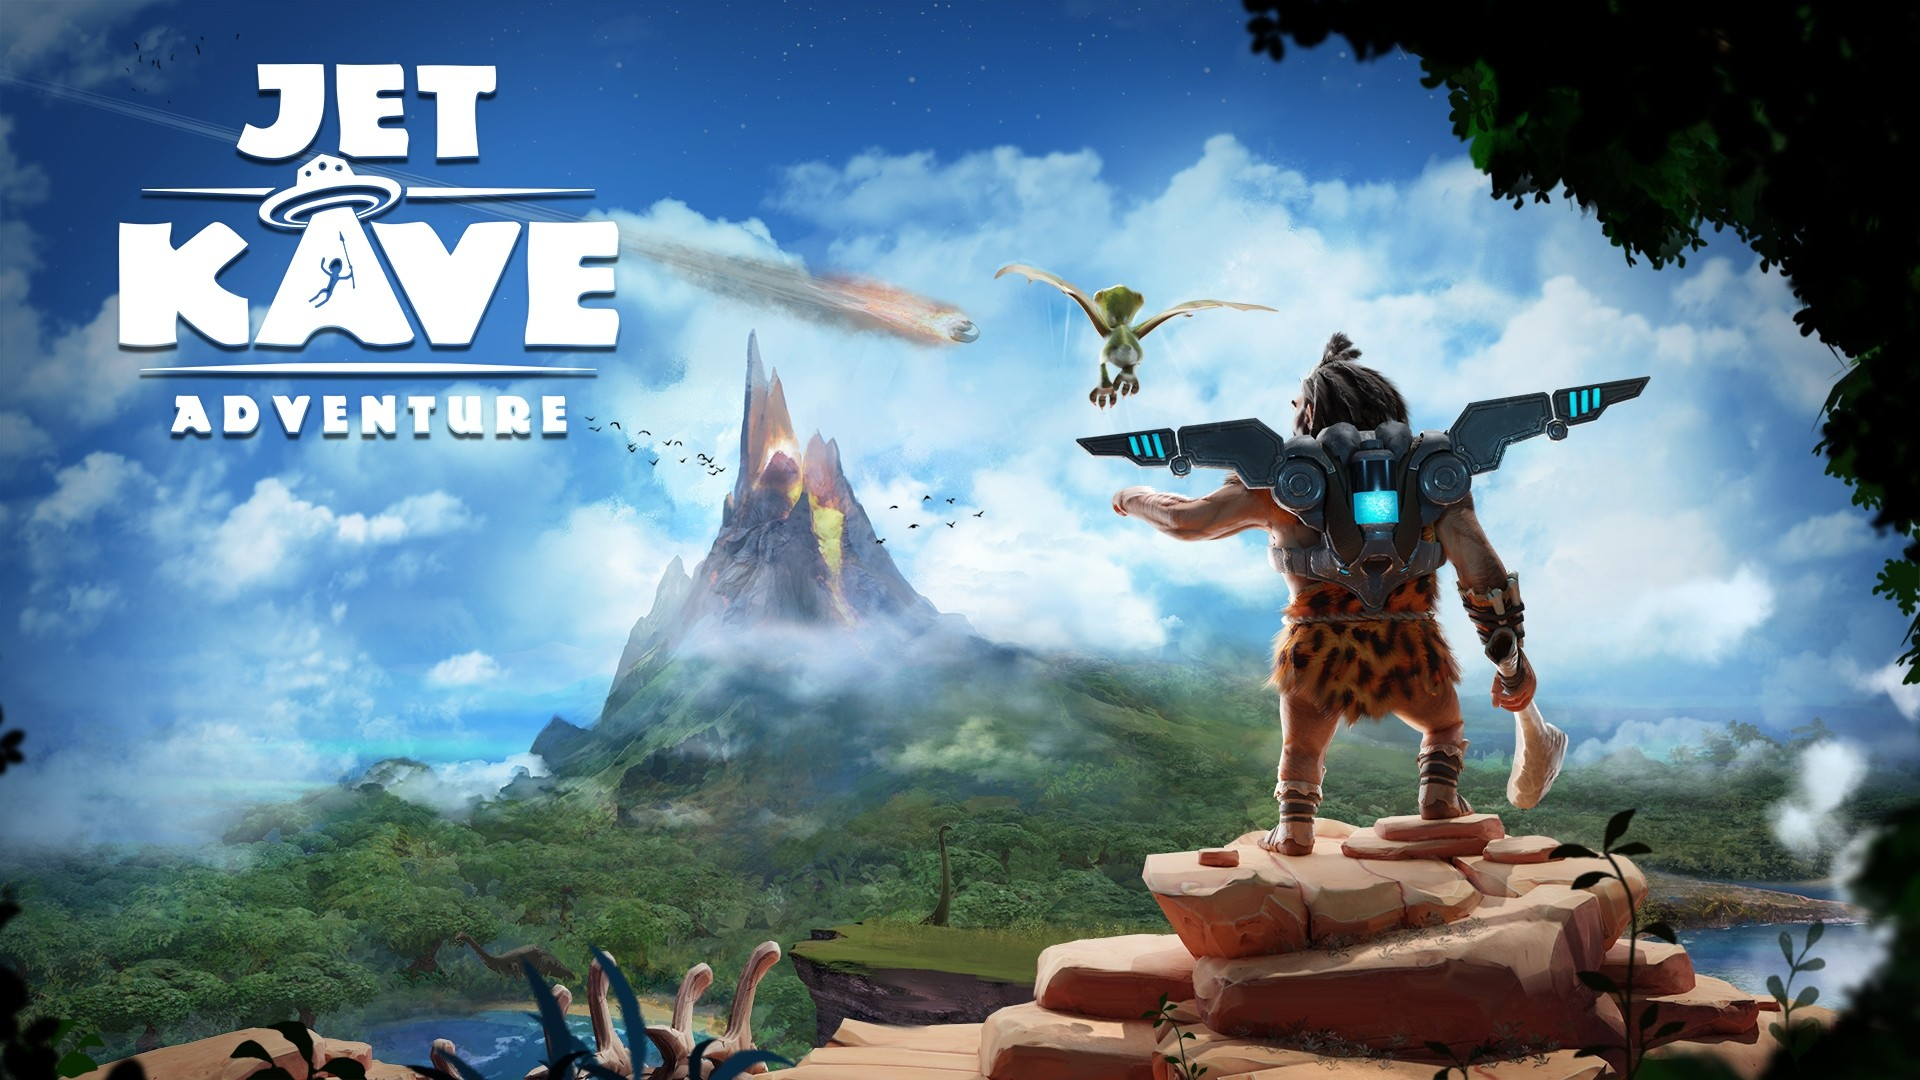 Stone-Fiction Platformer Jet Kave Adventure Now Available